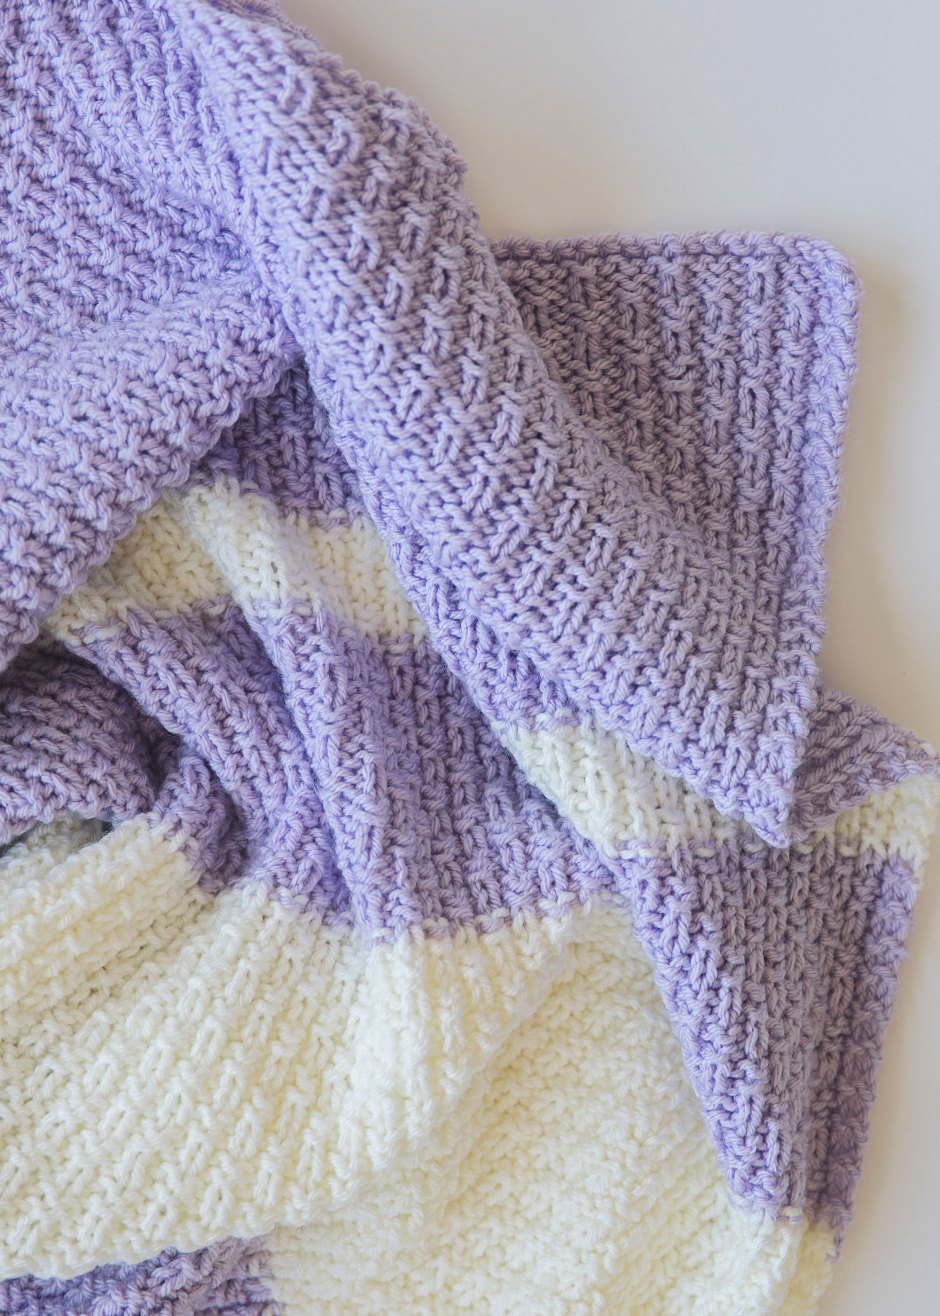 Easy Baby Blanket Patterns Knitting : Easy Knit Baby Blanket Pattern - Leelee KnitsLeelee Knits